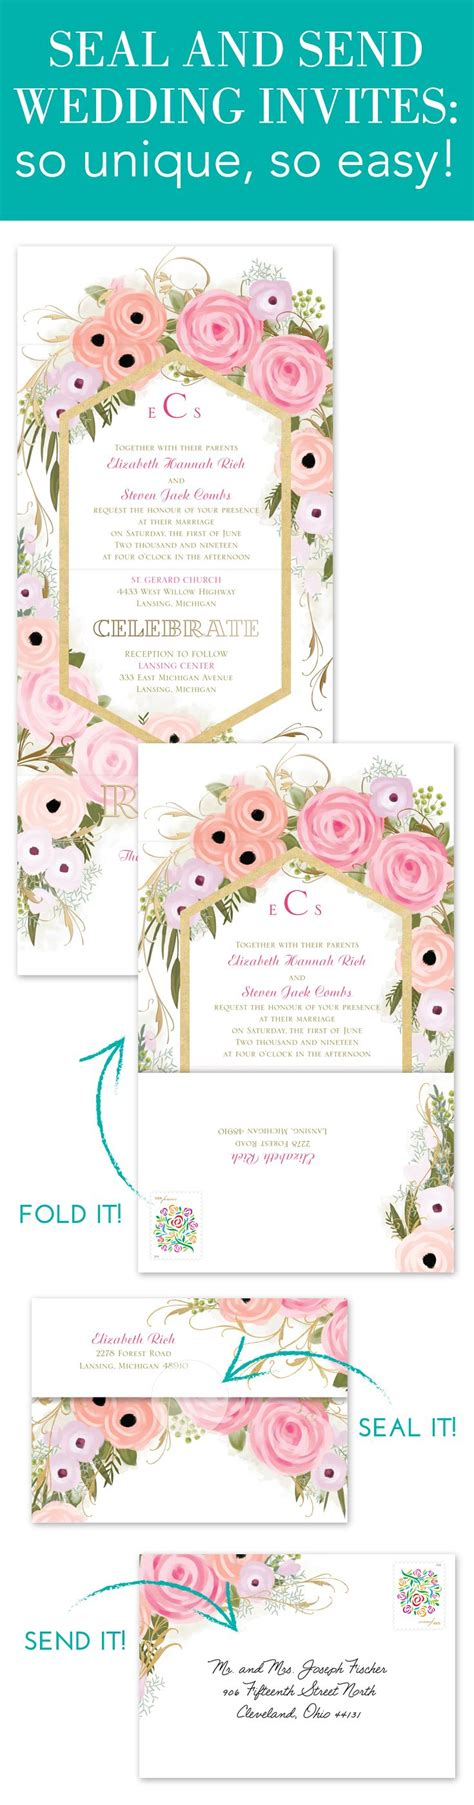 are wedding invitations necessary 1000 images about wedding invitation trends on pinterest